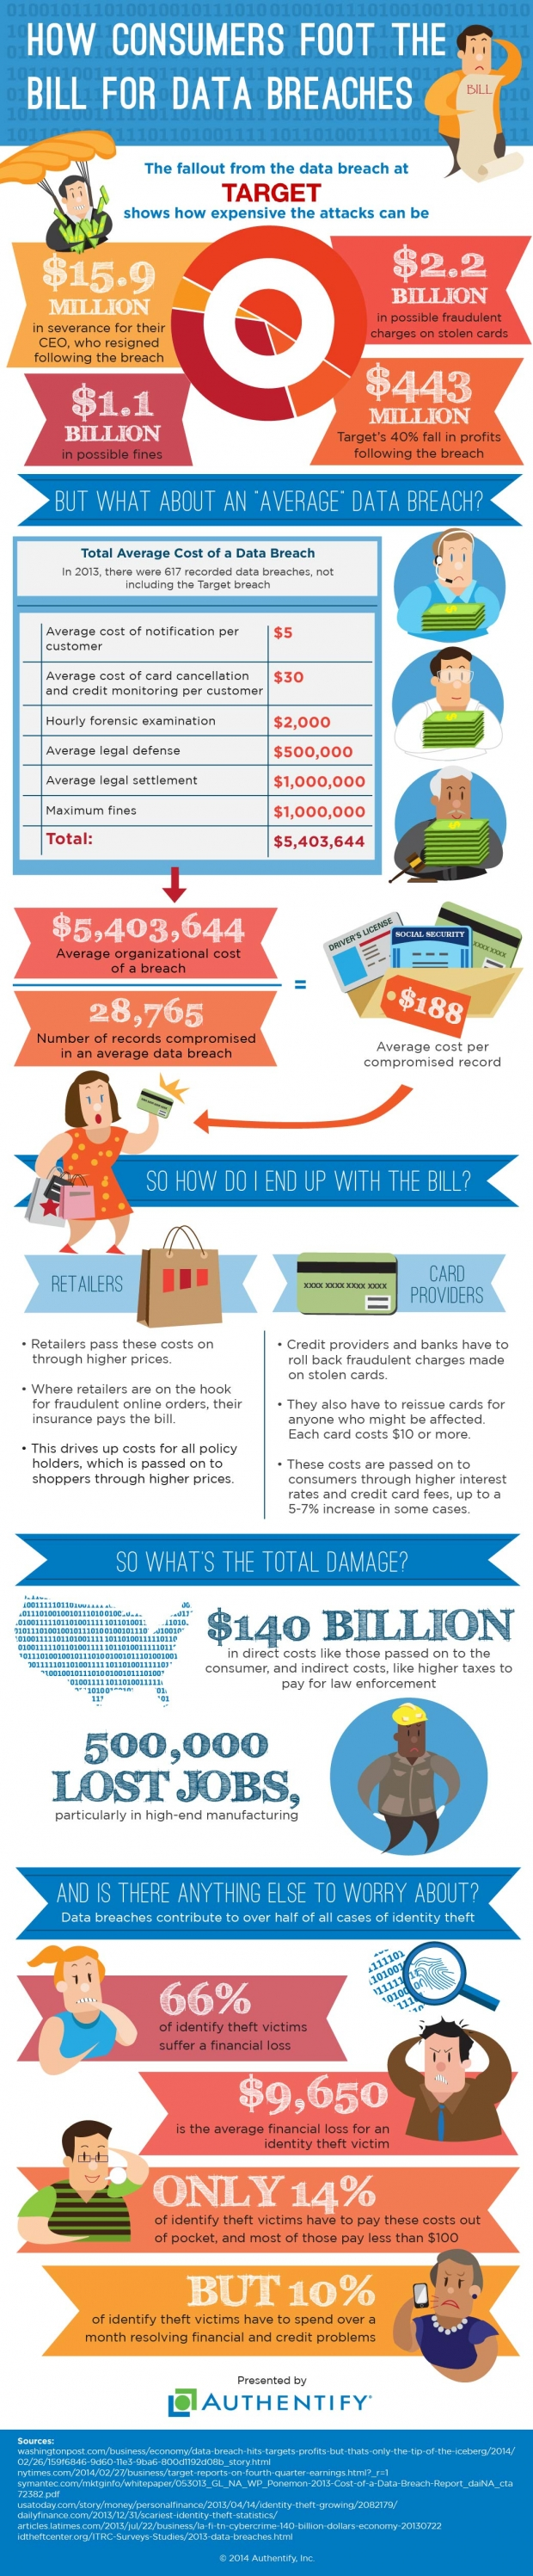 How-Consumers-Foot-the-Bill-Infographic